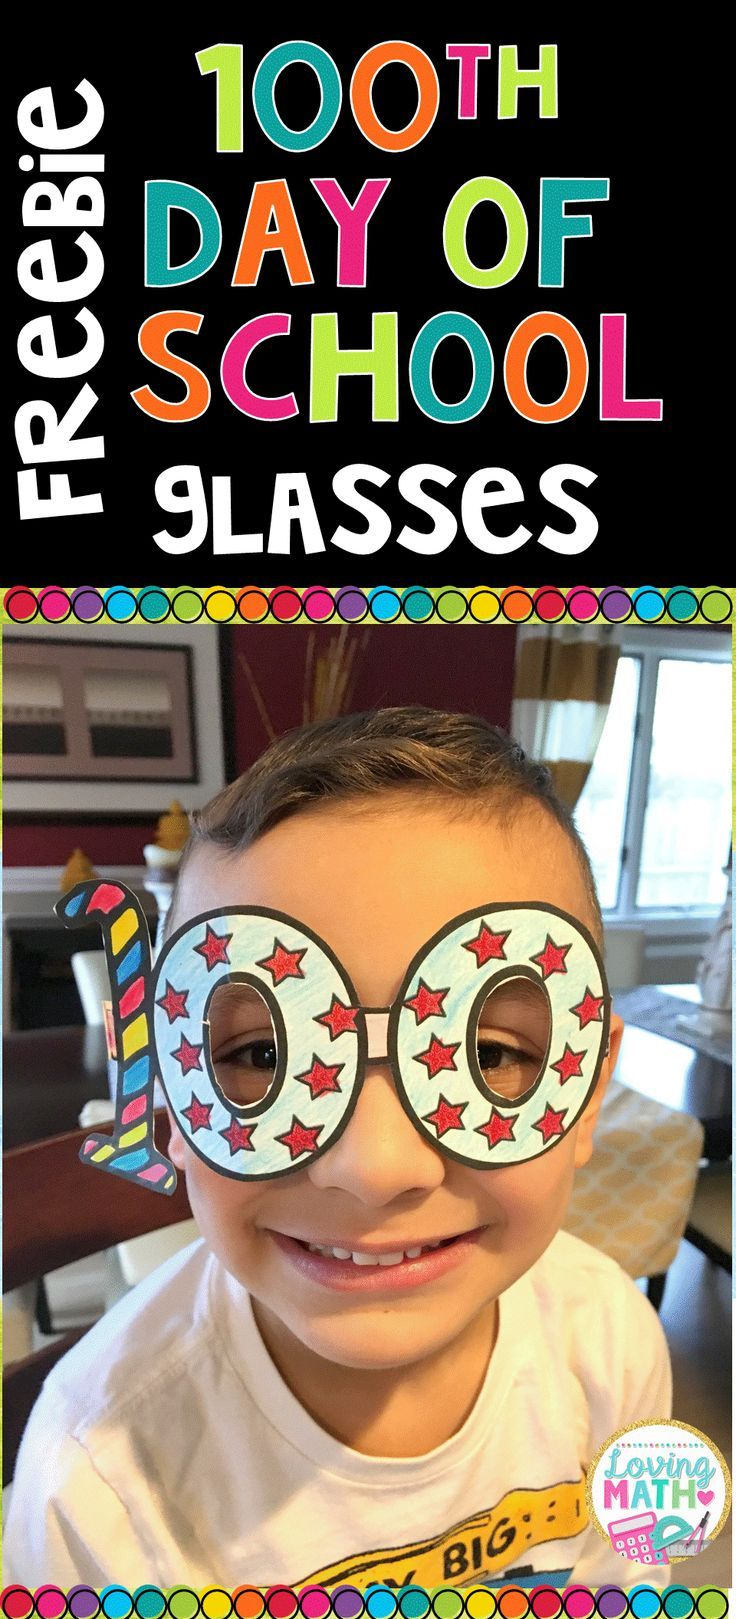 100th Day of School Glasses: FREE!